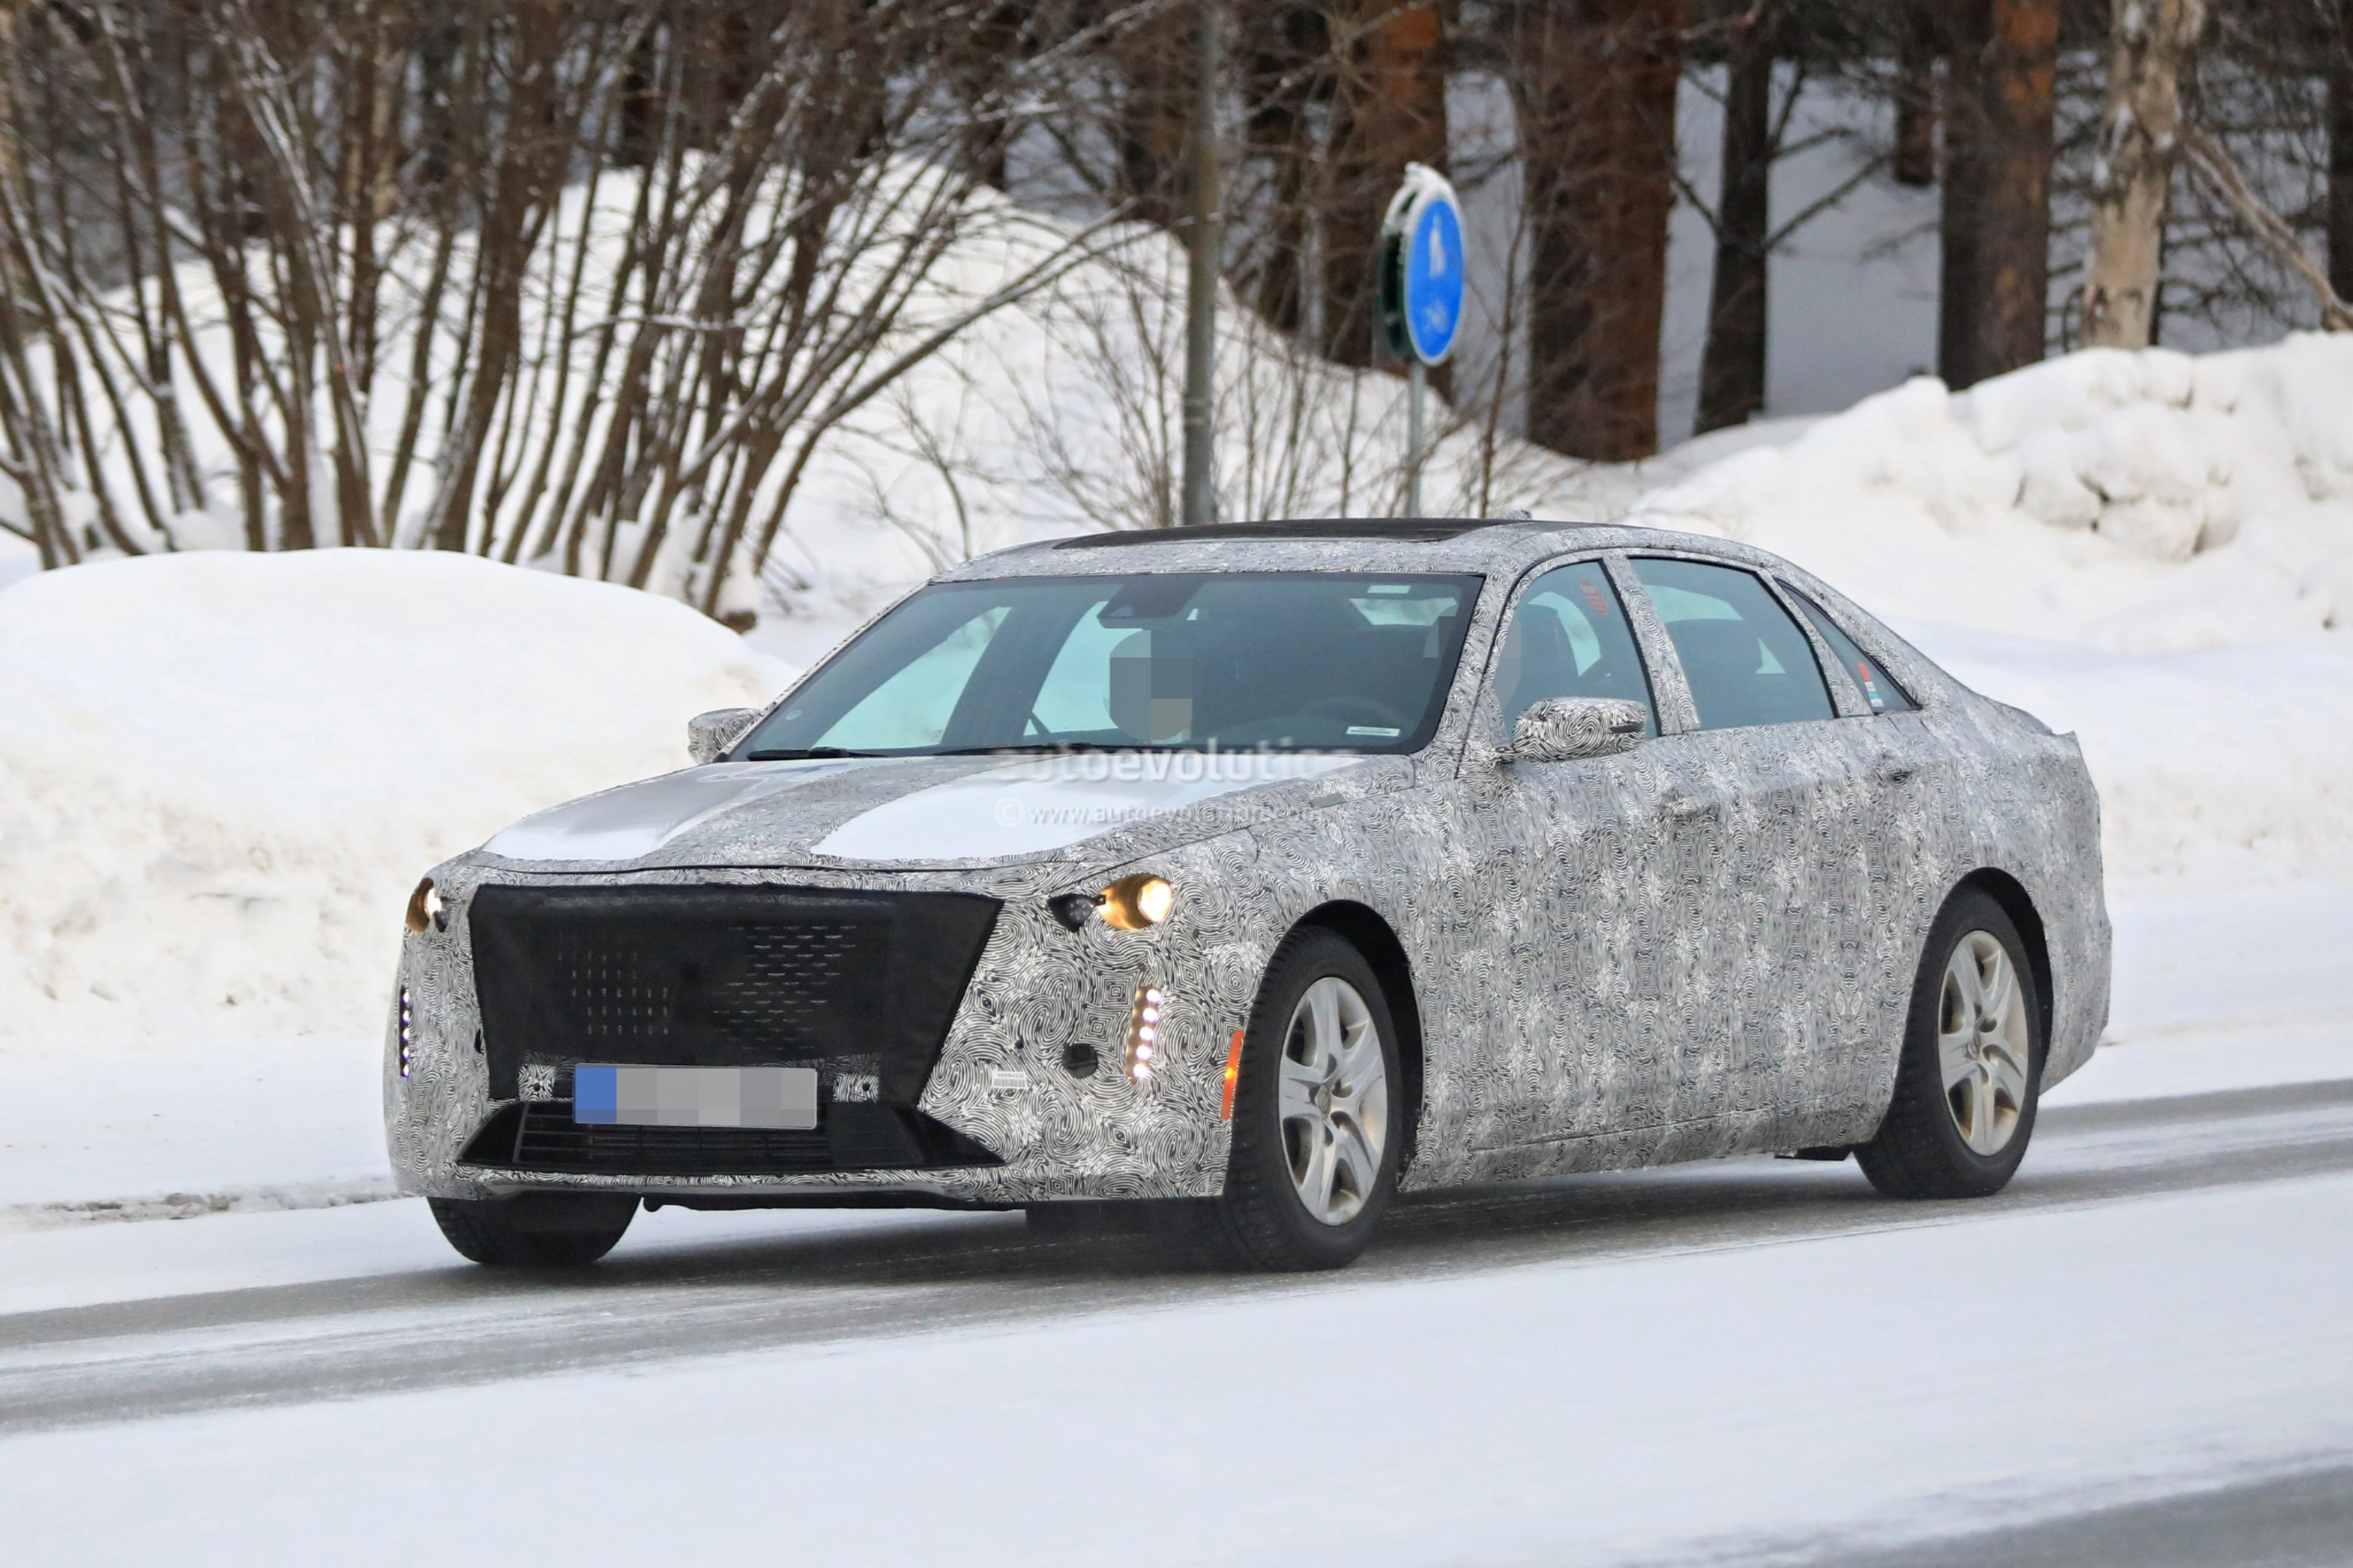 Spyshots: 2019 Cadillac CT6 Caught Testing Near The Arctic ...